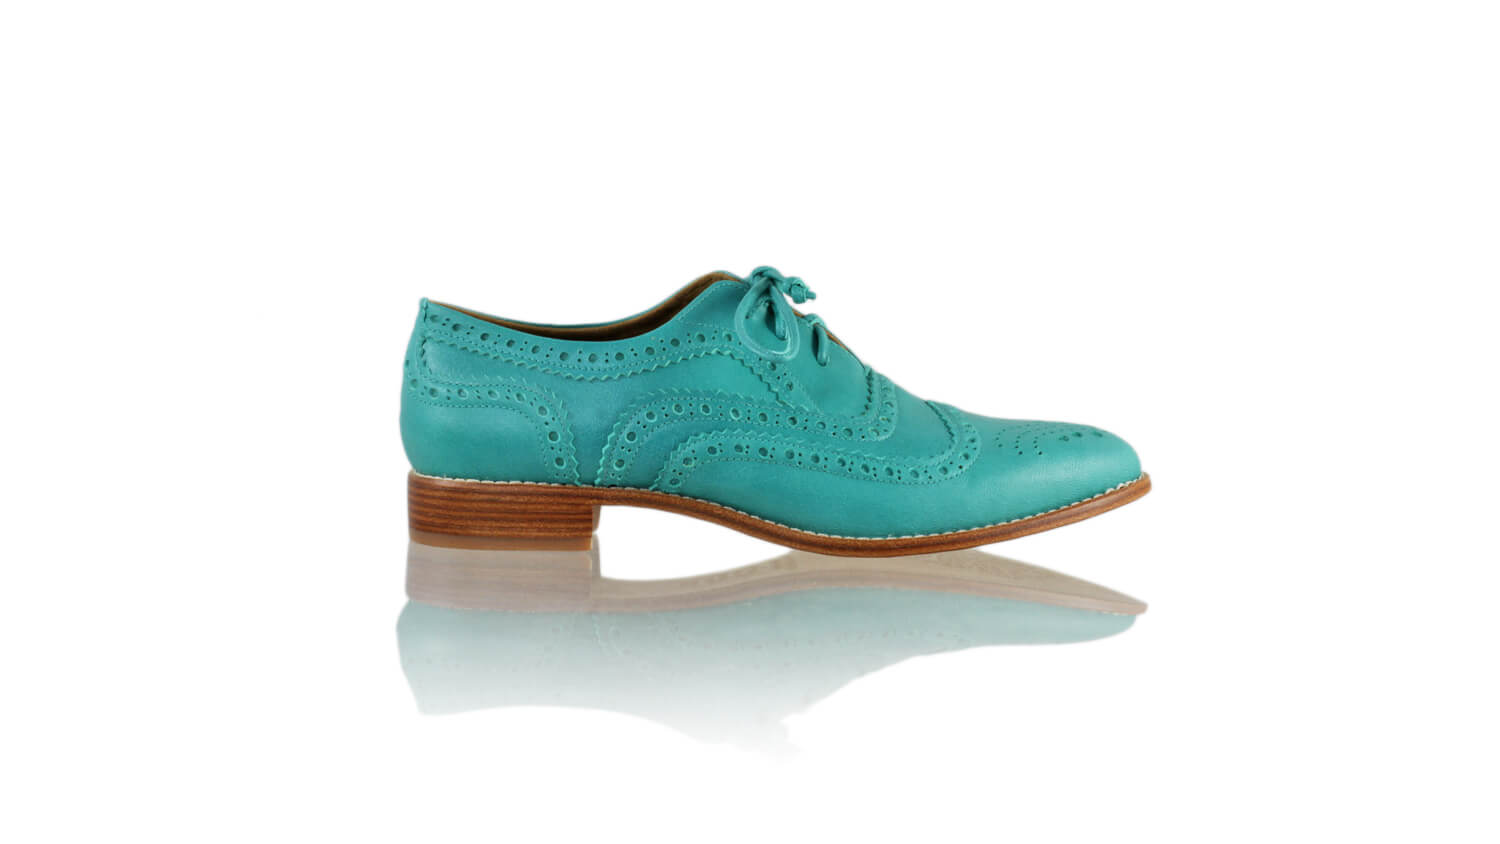 Leather-shoes-Pedro 25mm Flat - Dark Aqua-flats laceup-NILUH DJELANTIK-NILUH DJELANTIK